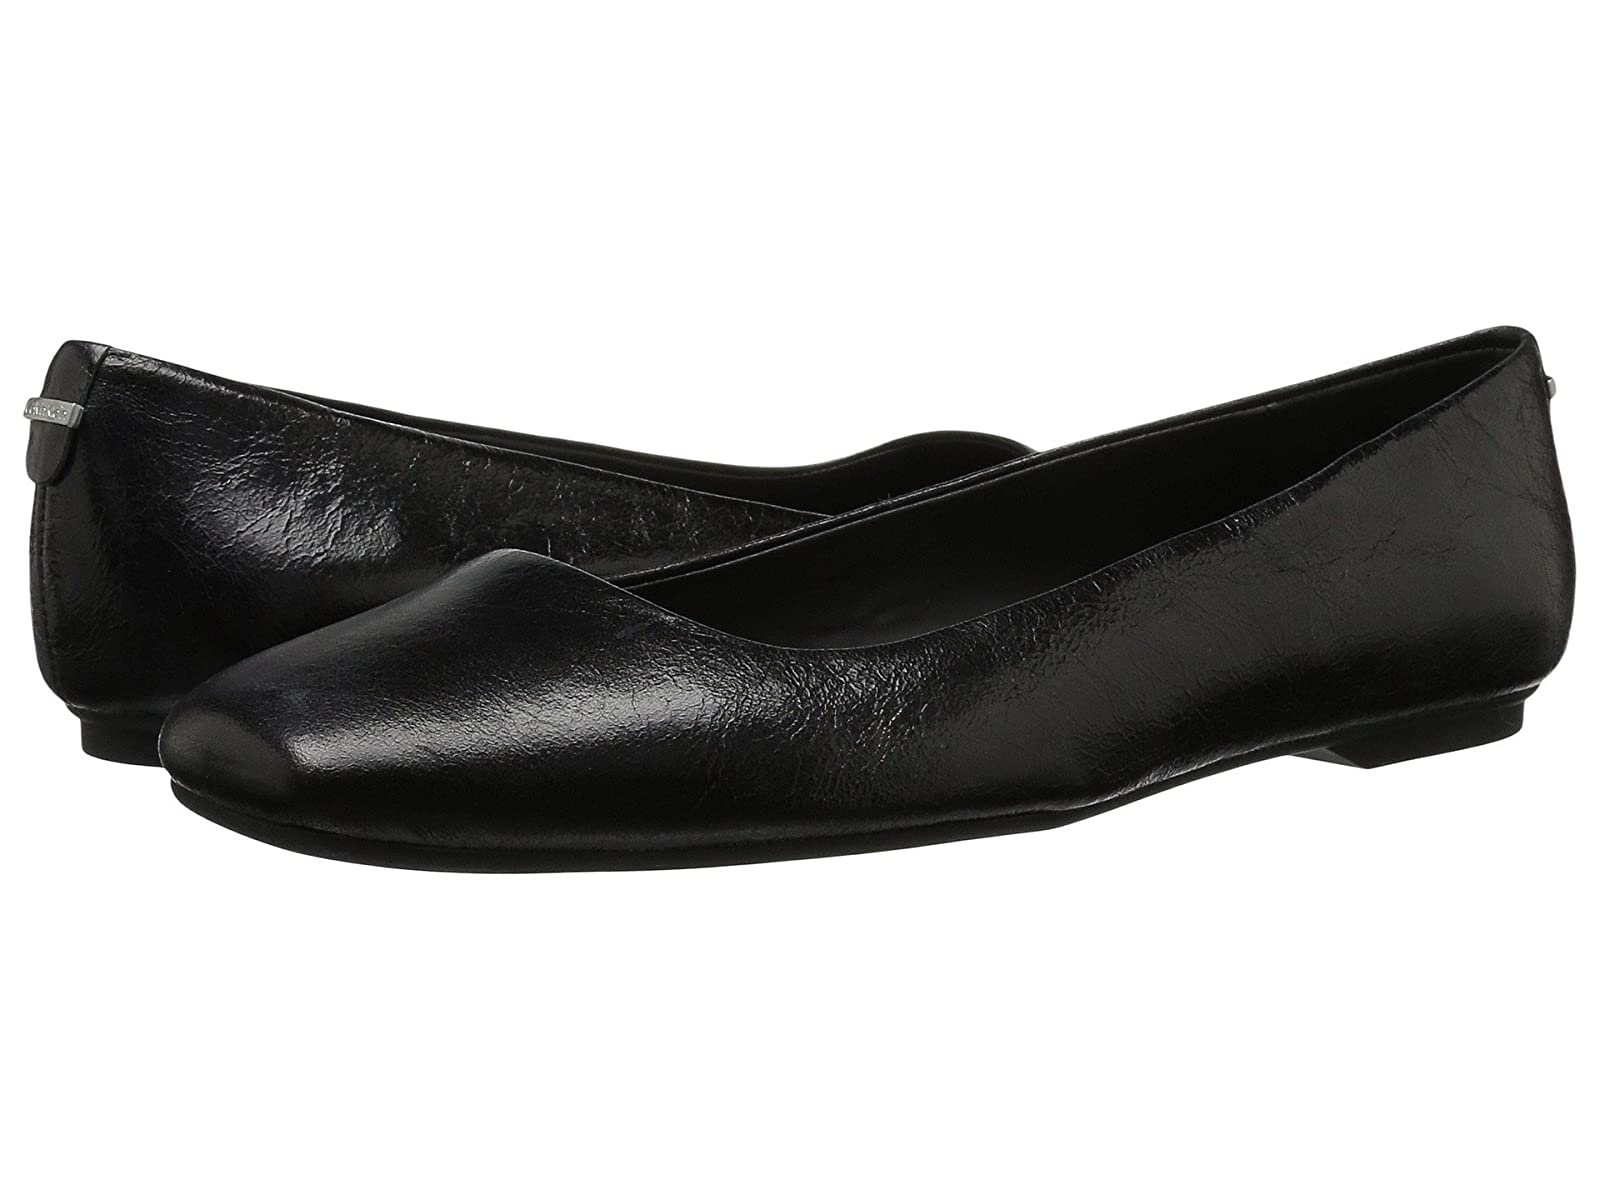 Calvin Klein EnithCheap and distinctive eye-catching shoes